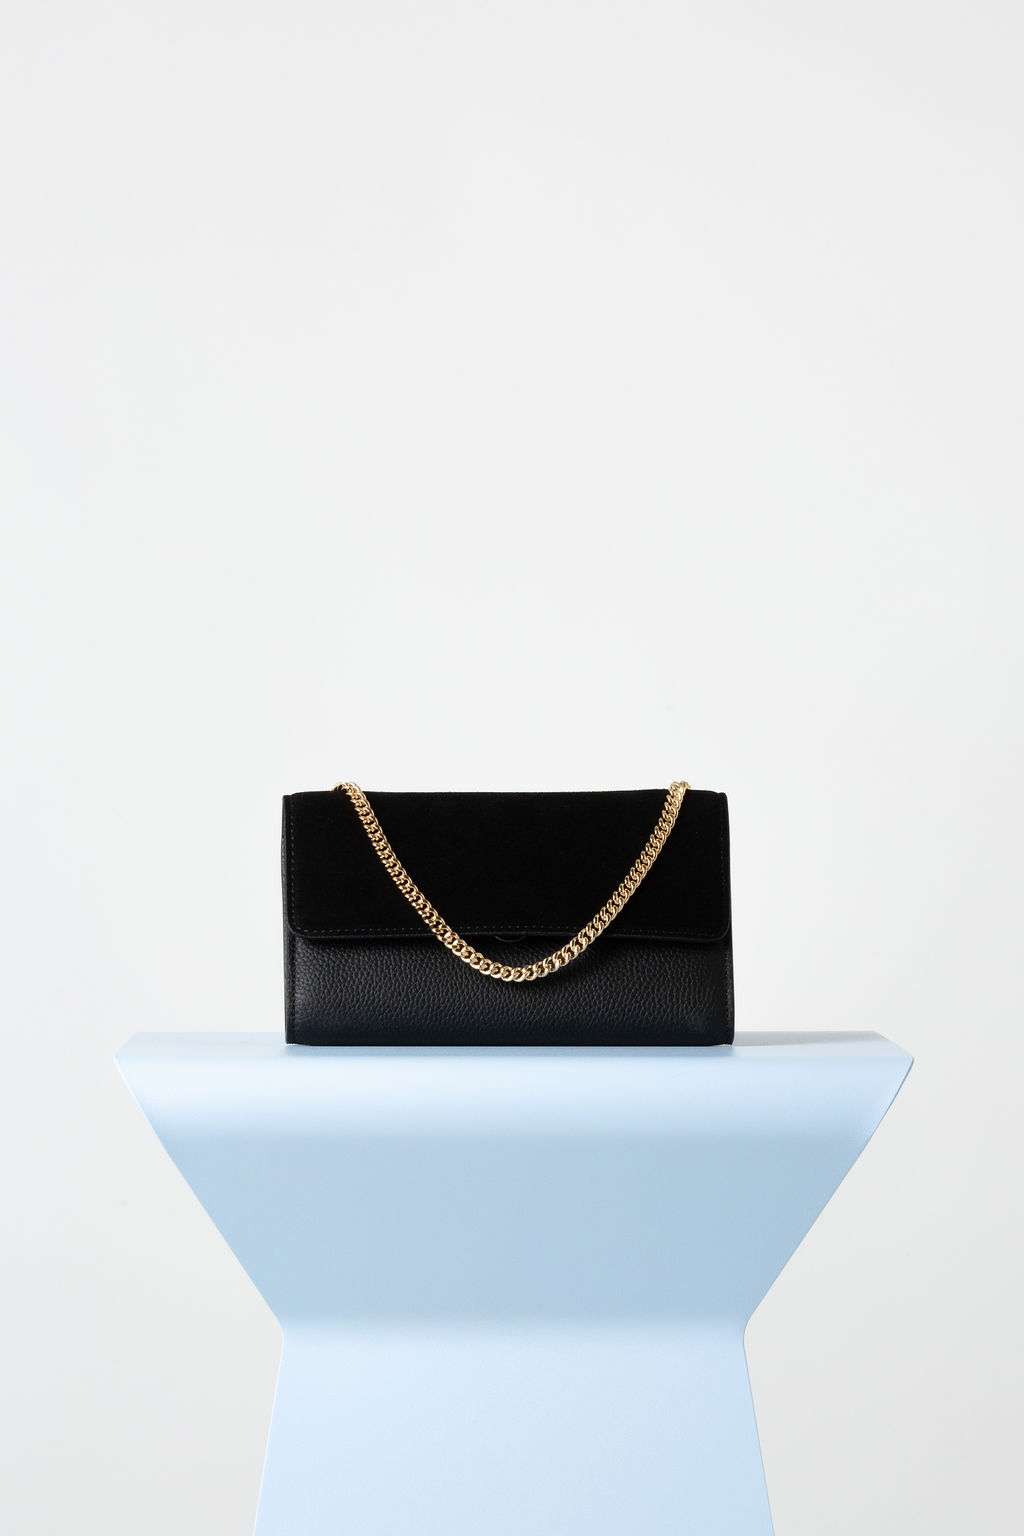 Frankie Evening Bag In Black Suede